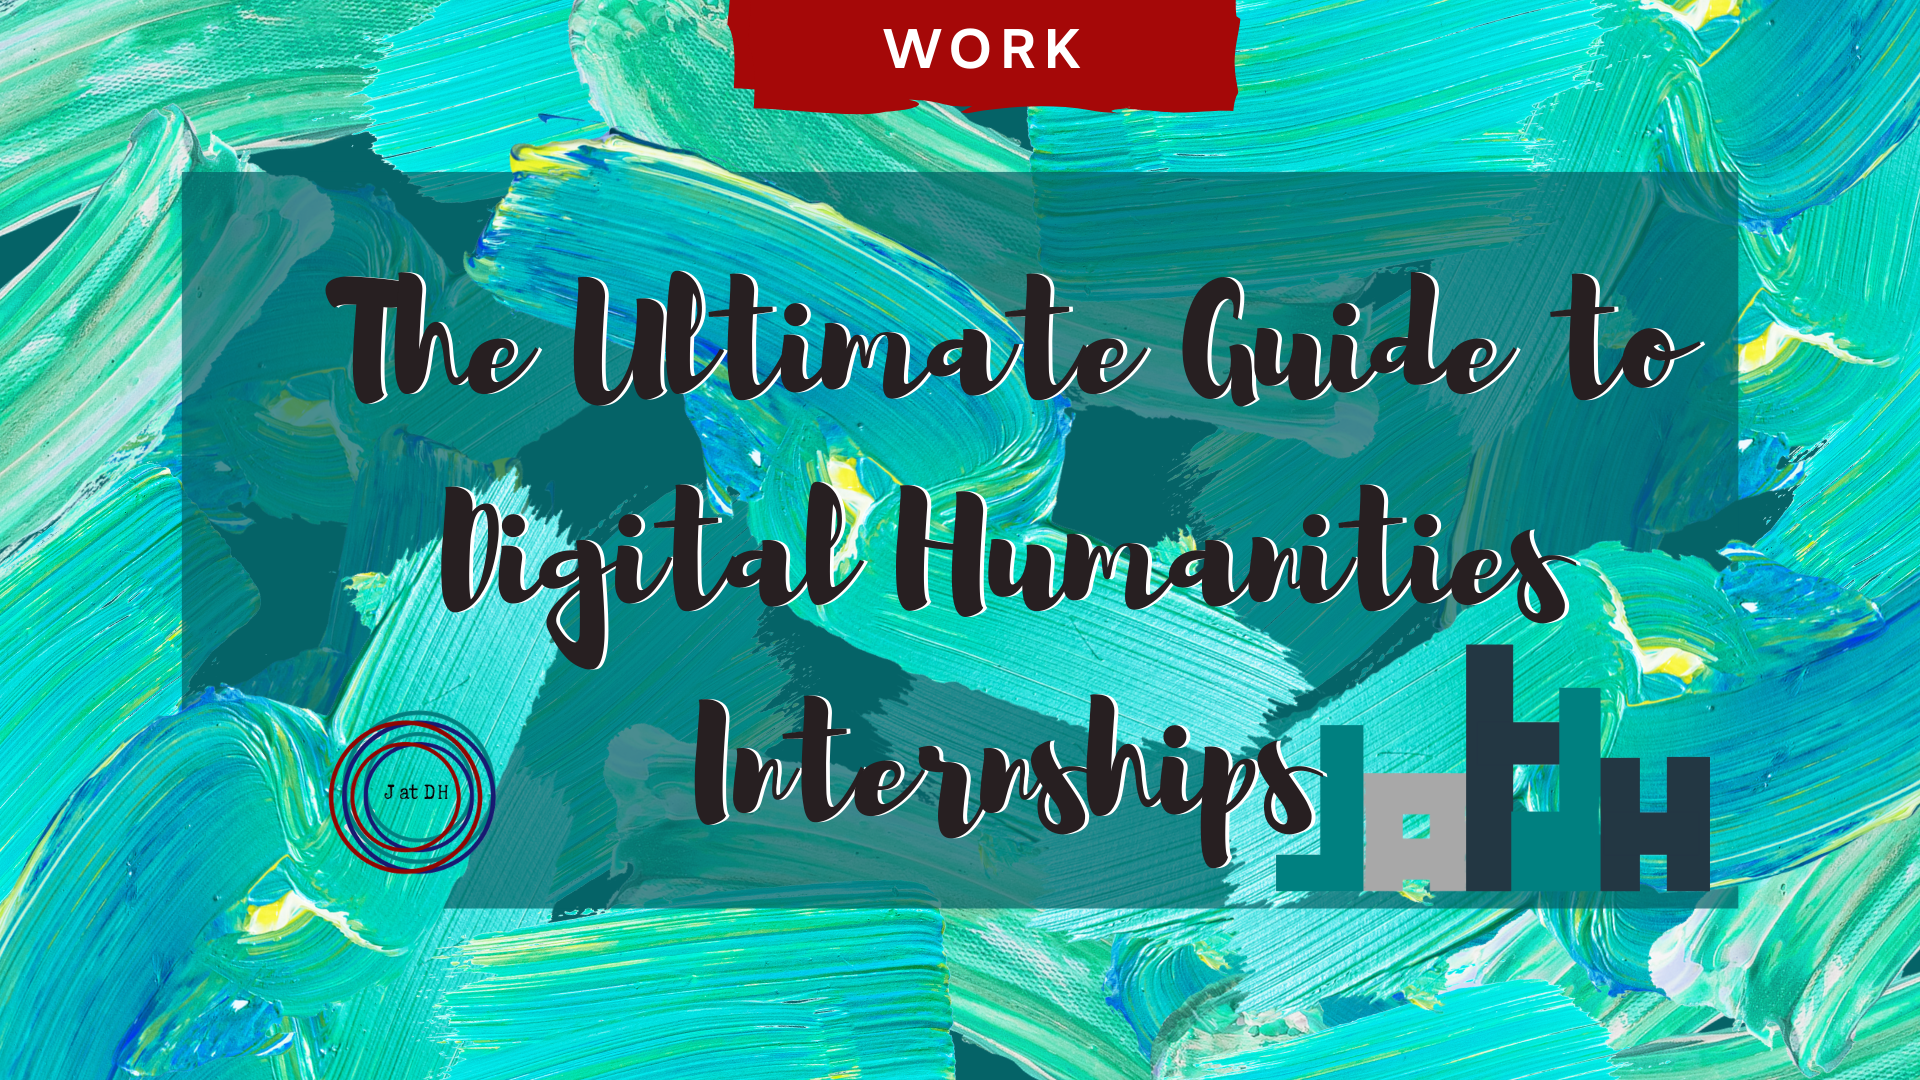 Green shaded paint strokes with the words The Ultimate Guide to Digital Humanities Internships and J at DH logos